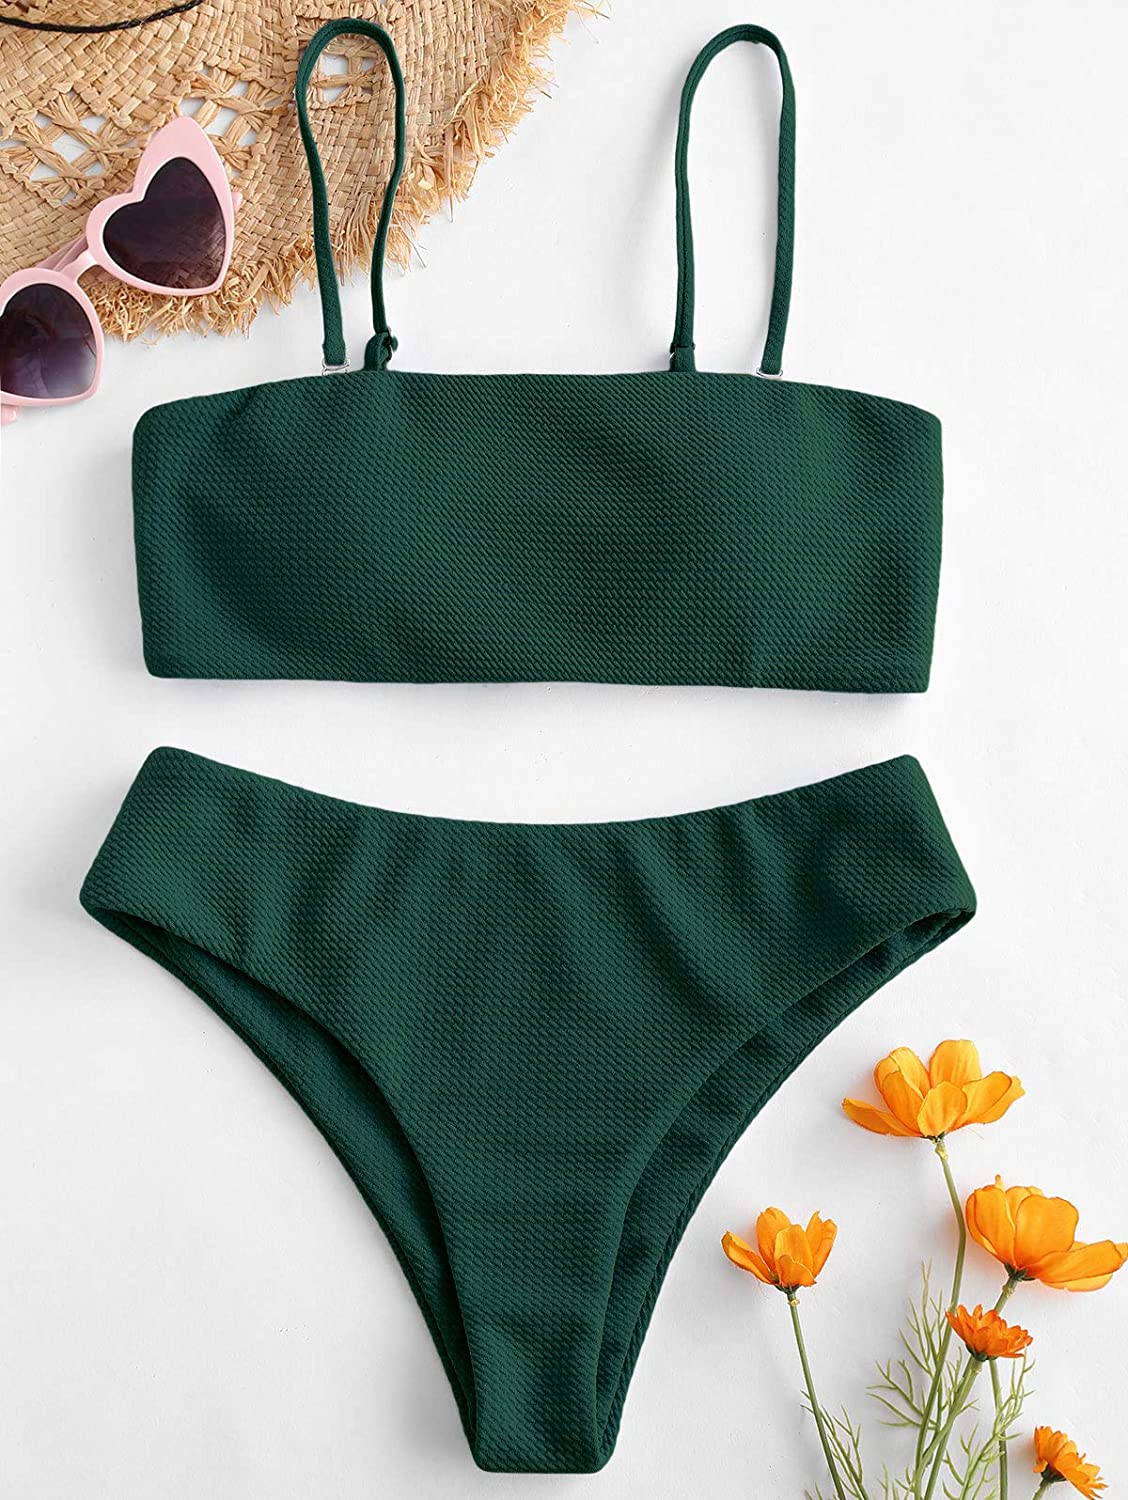 ZAFUL Bikini Textured Removable Straps Padded Bandeau Two Piece Bathing Suits for Women